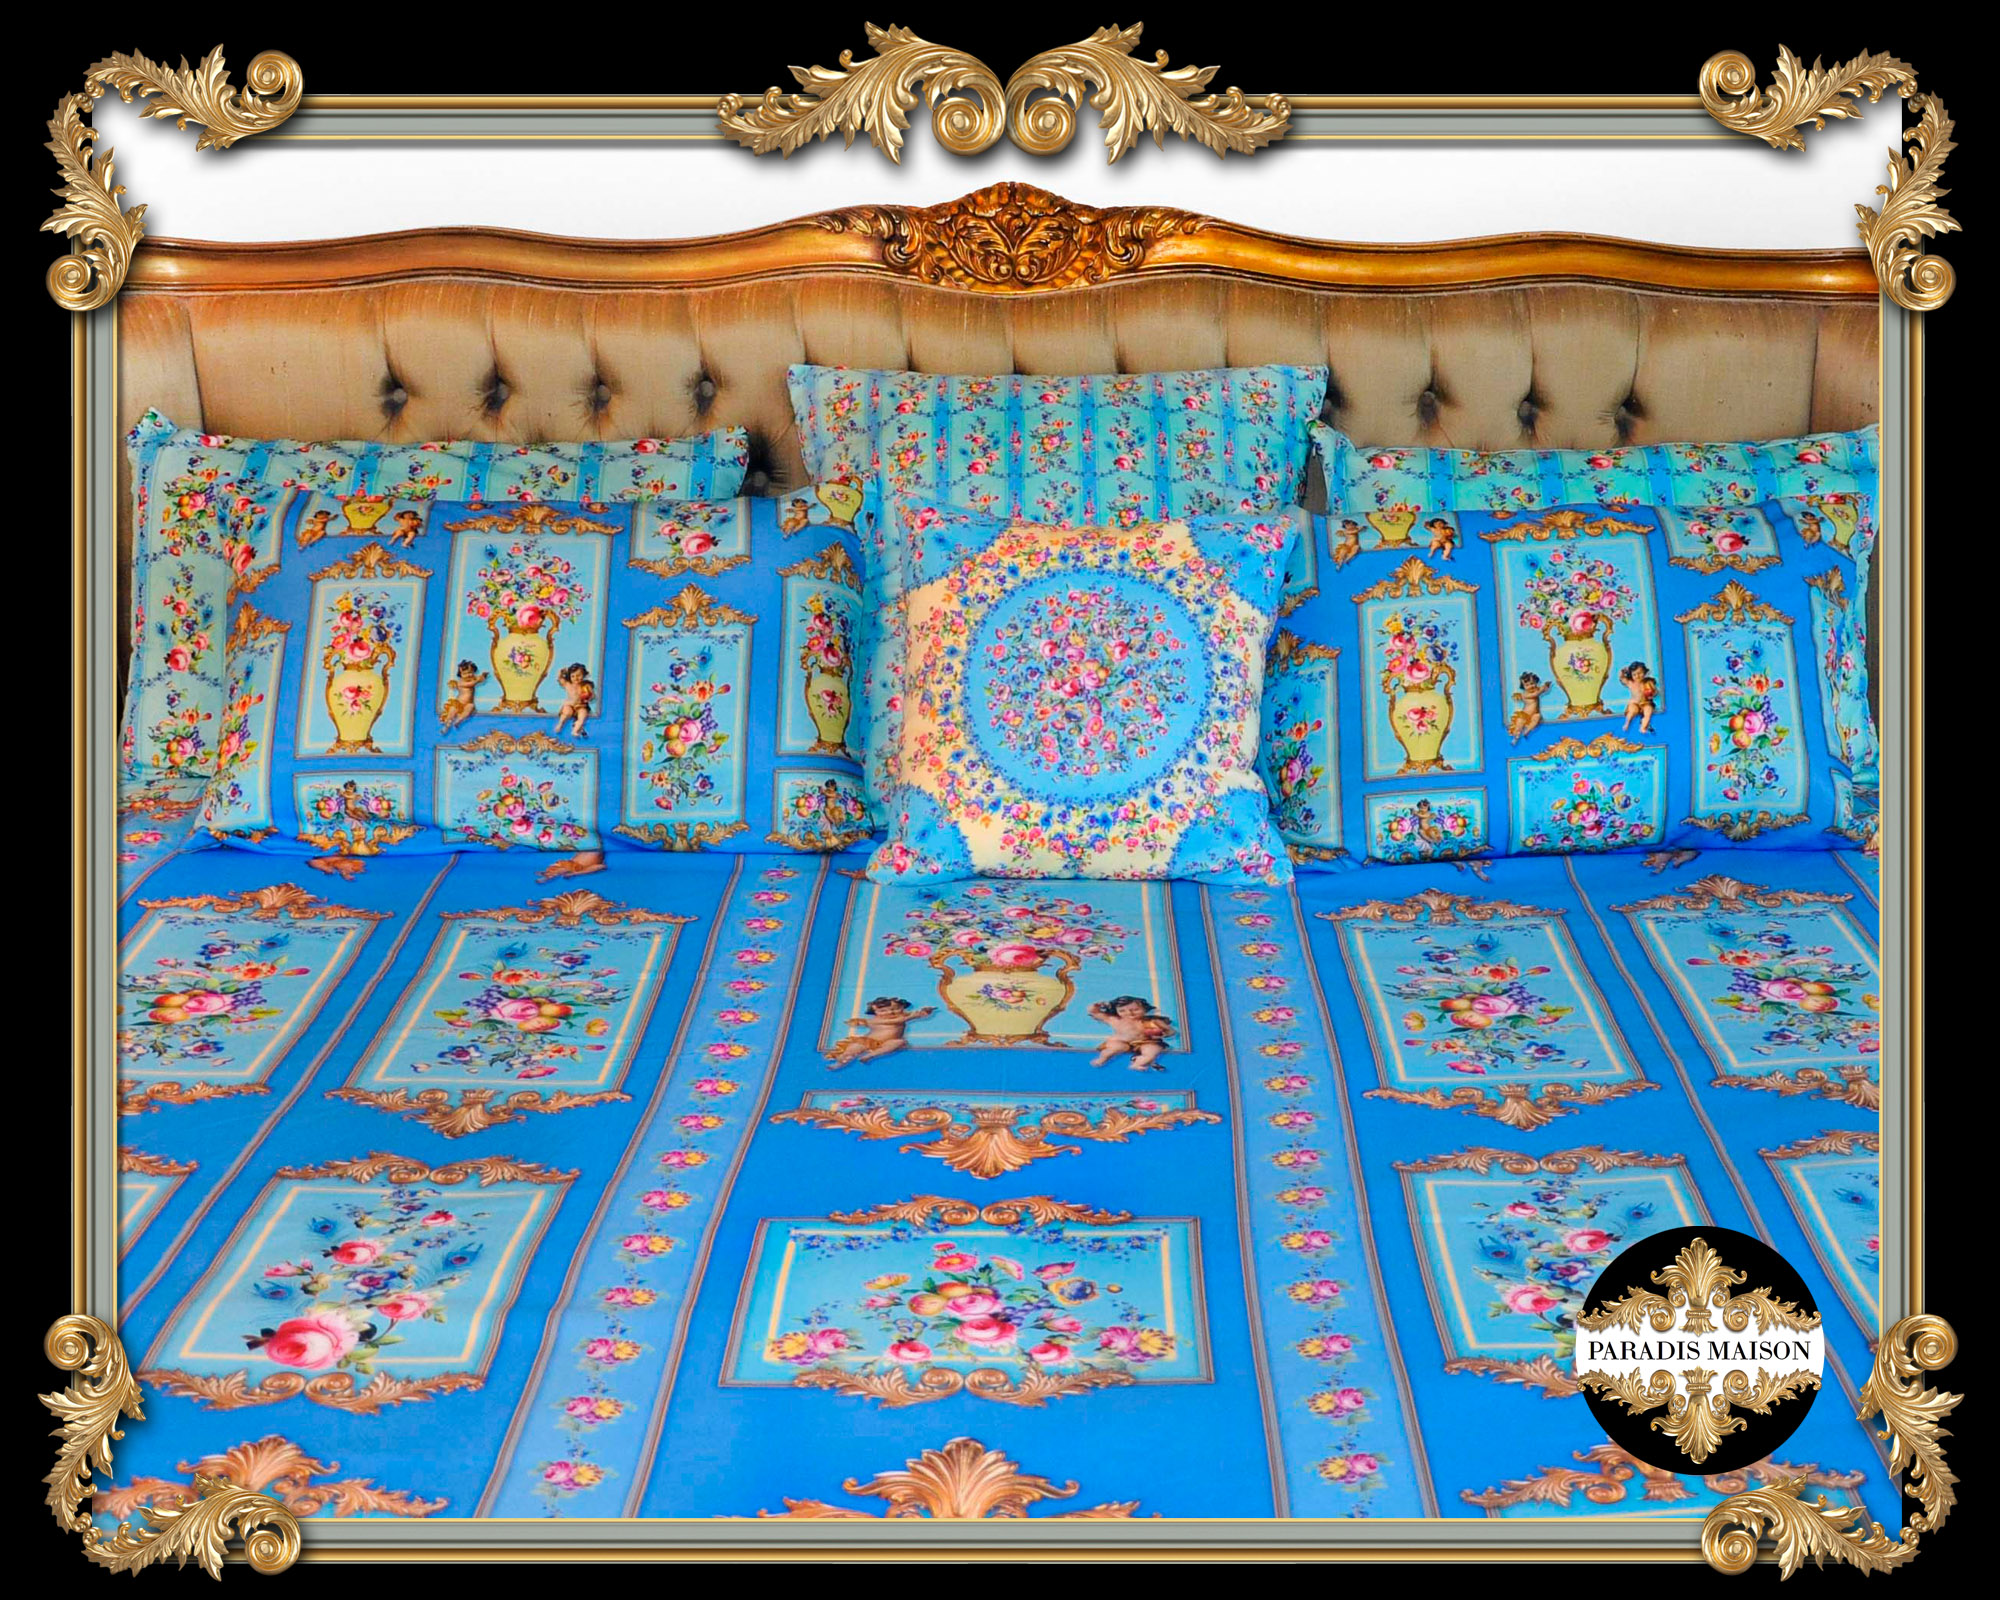 ornate french versailles style comforter